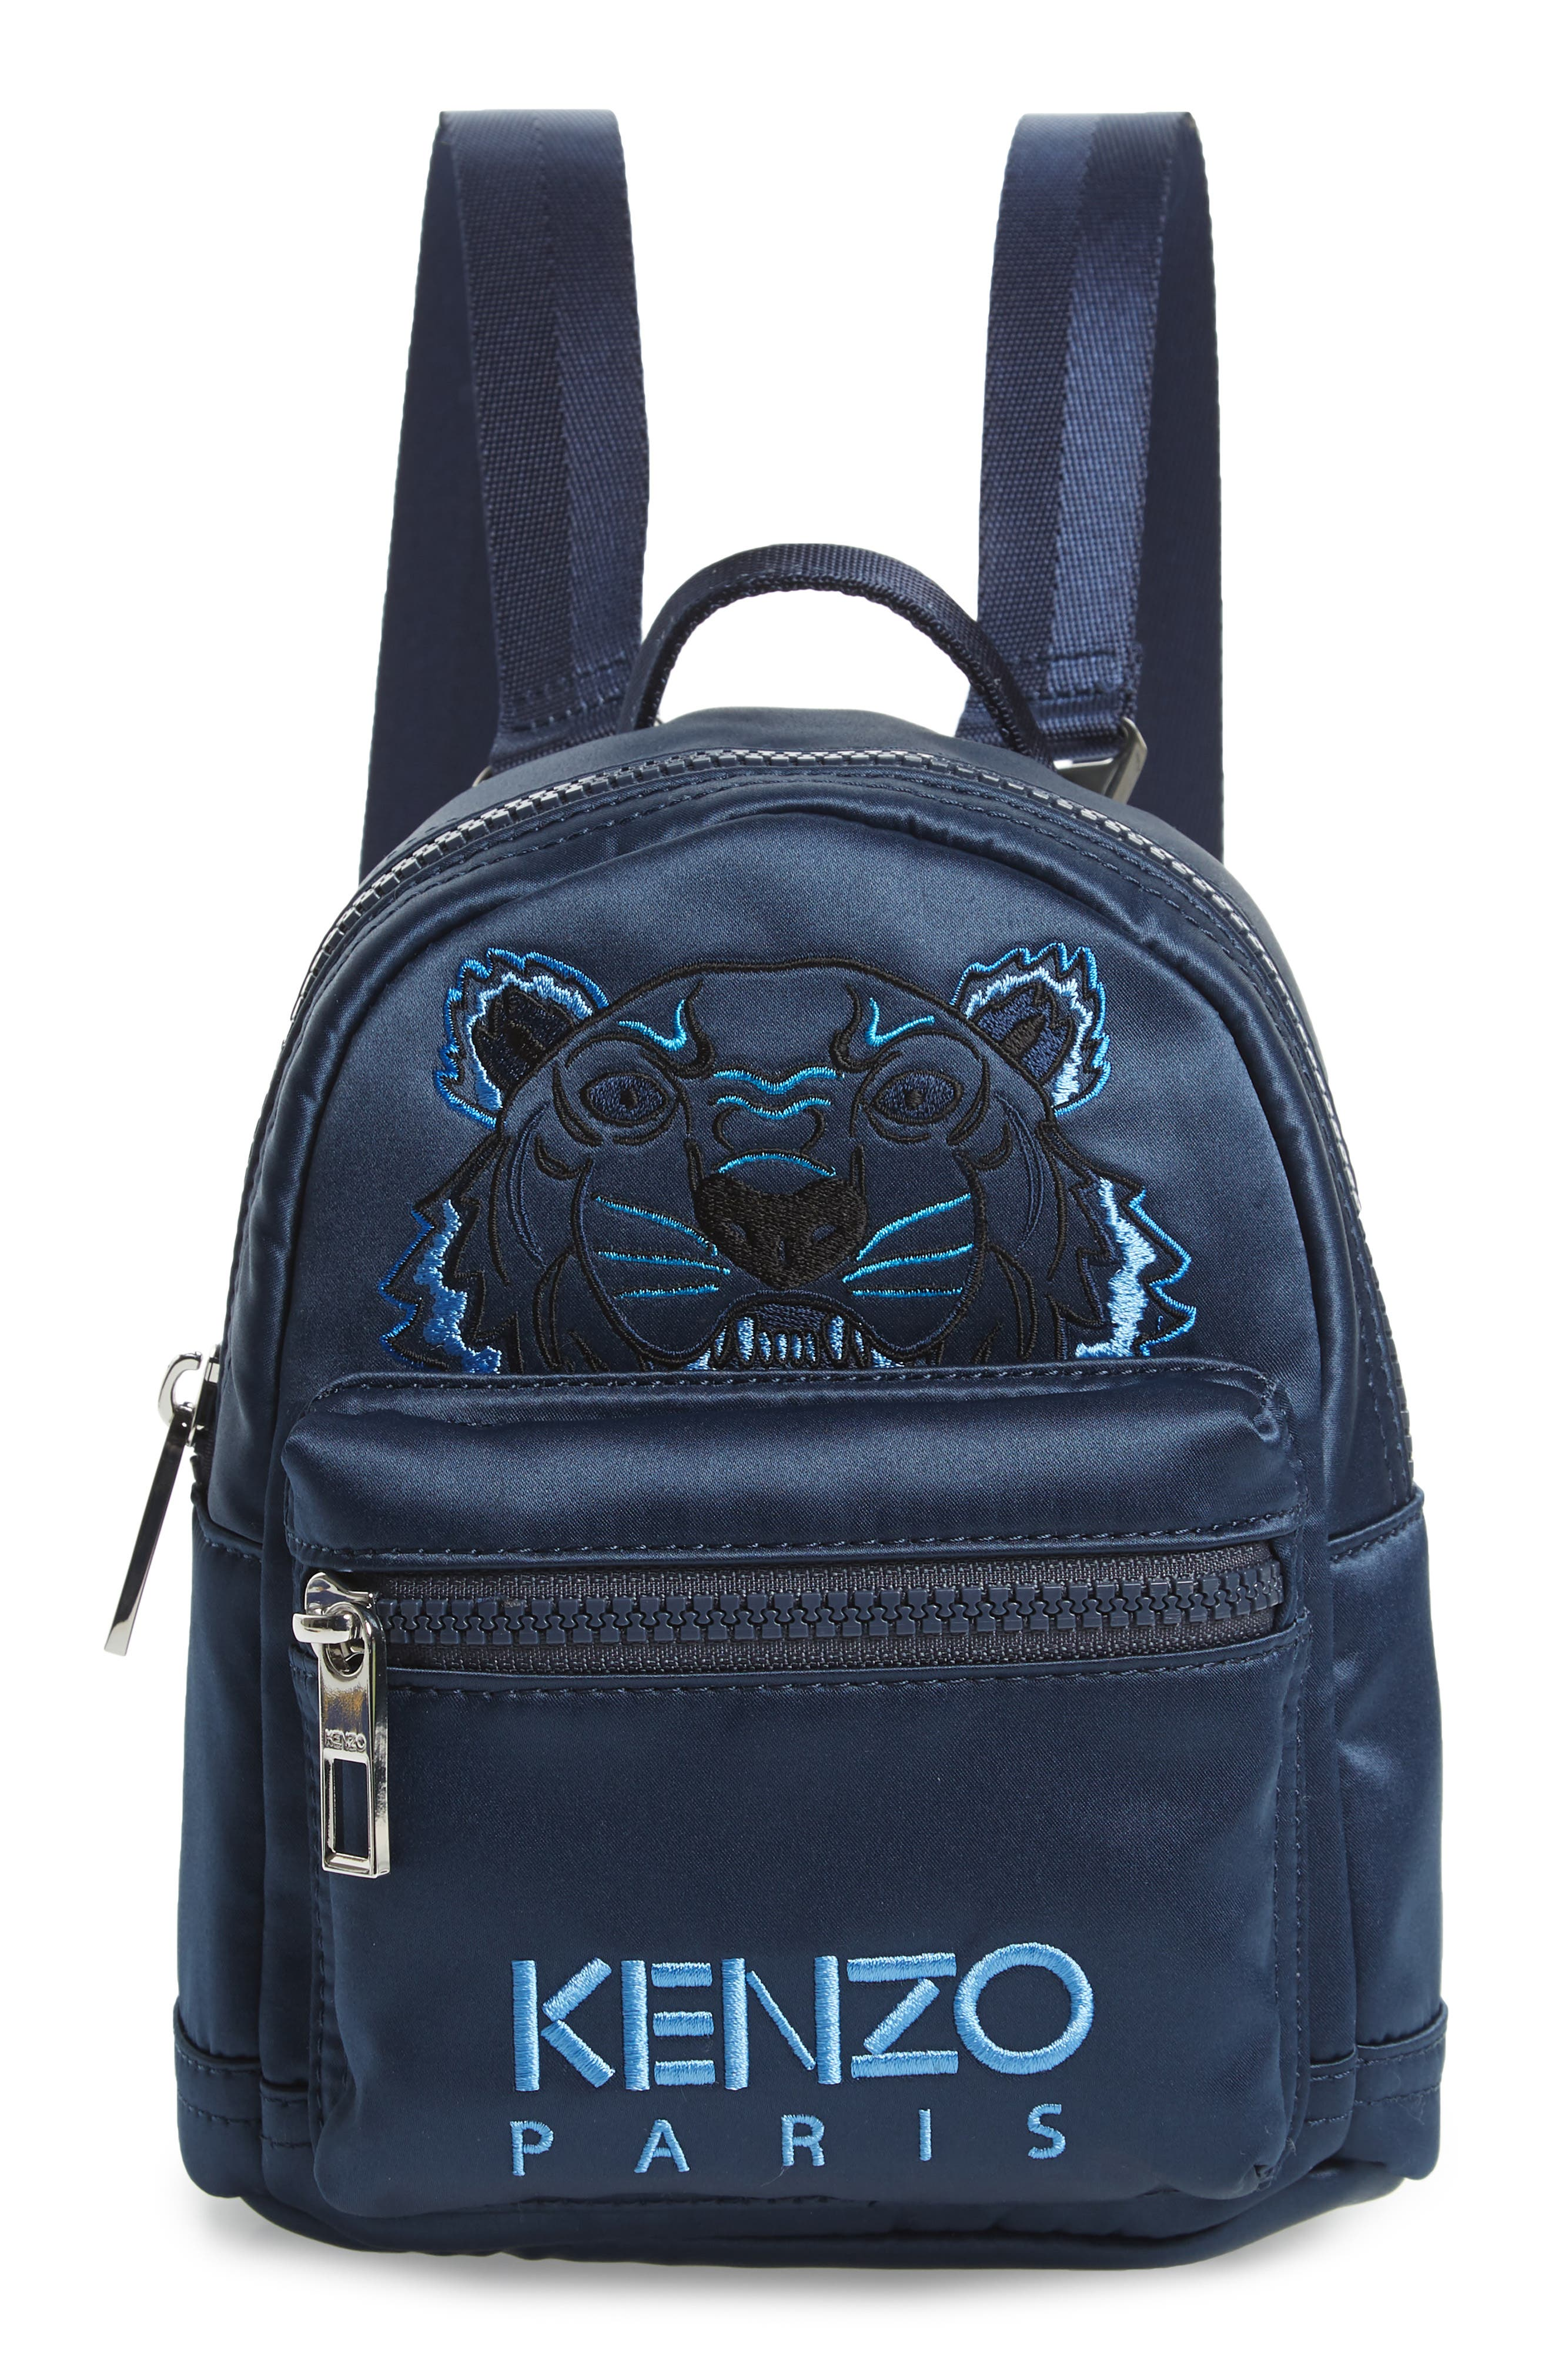 Embroidered KENZO Embroidered Backpack KENZO Tiger Mini SEvqx4w0